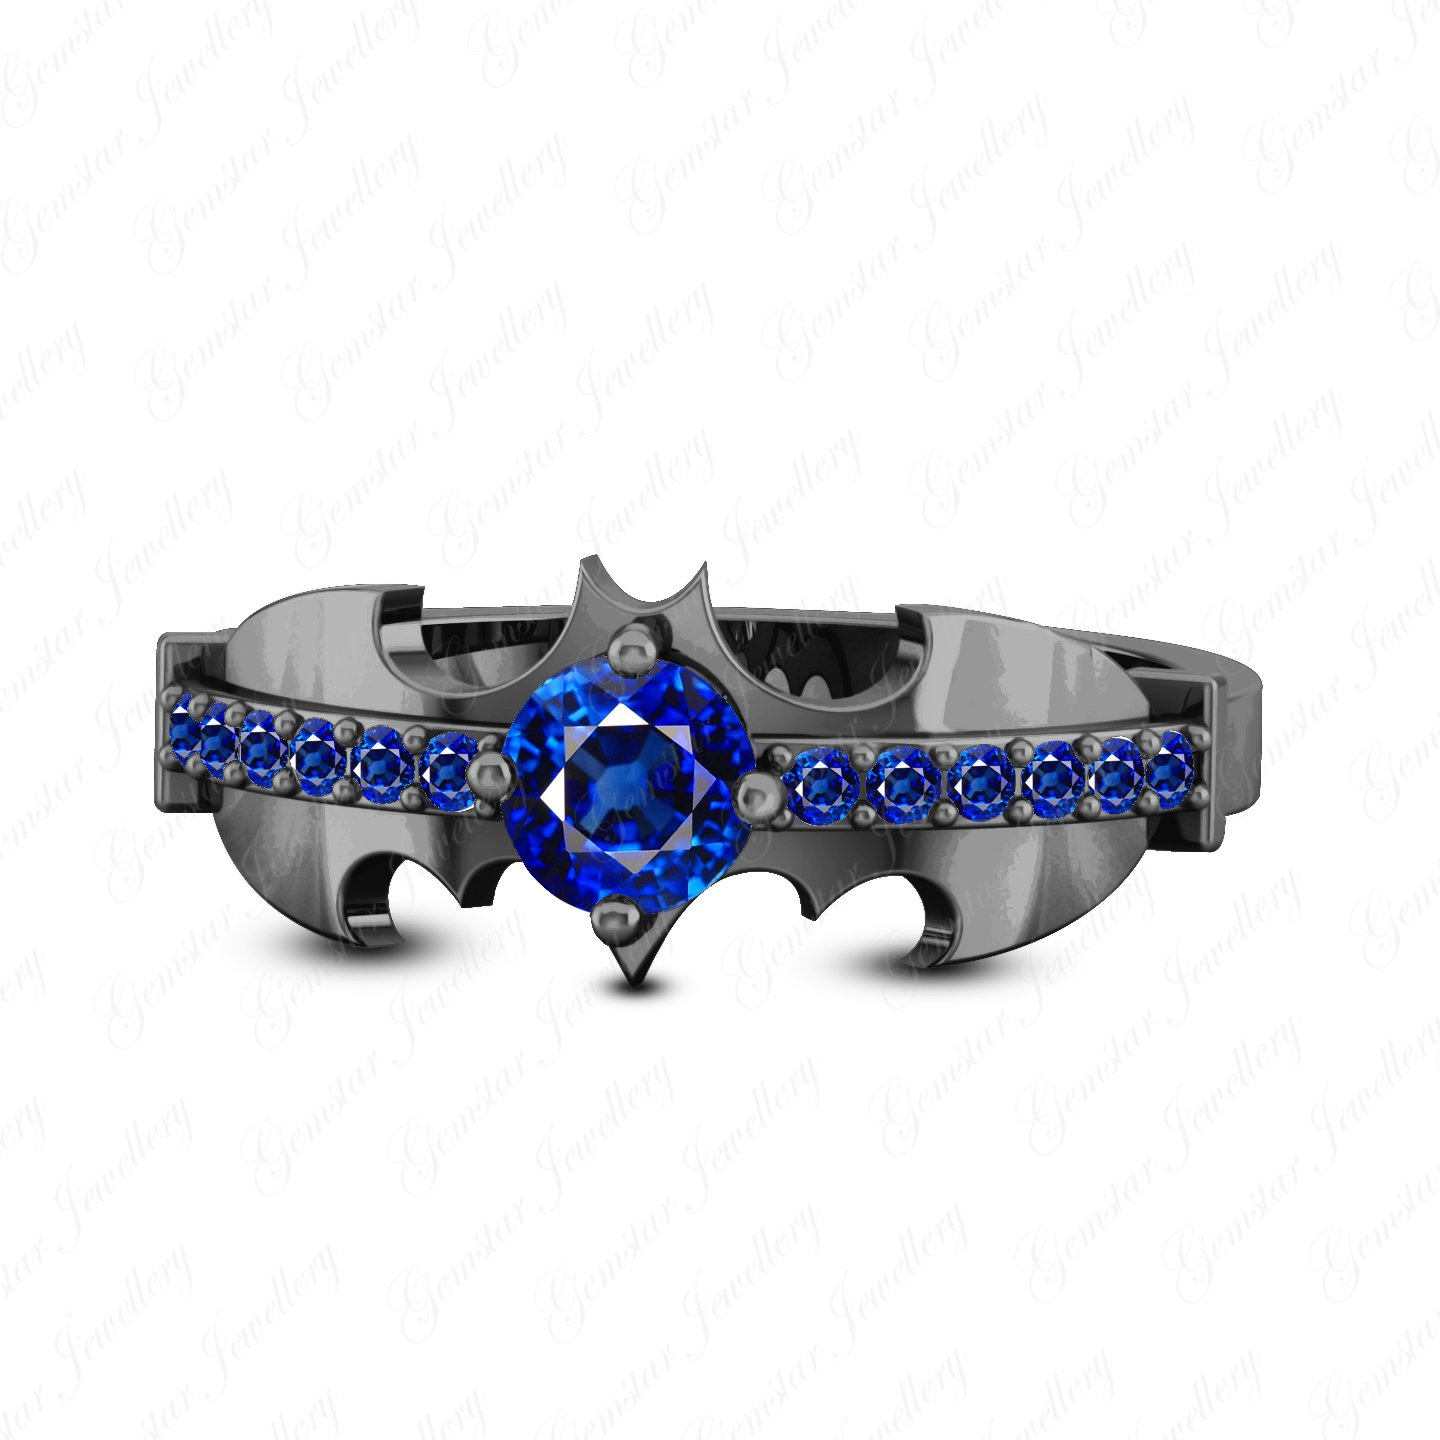 Gemstar Jewellery 14k Black Gold Plated Round Cut Blue Sapphire Engagement Classy Look Batman Ring by Gemstar Jewellery (Image #1)